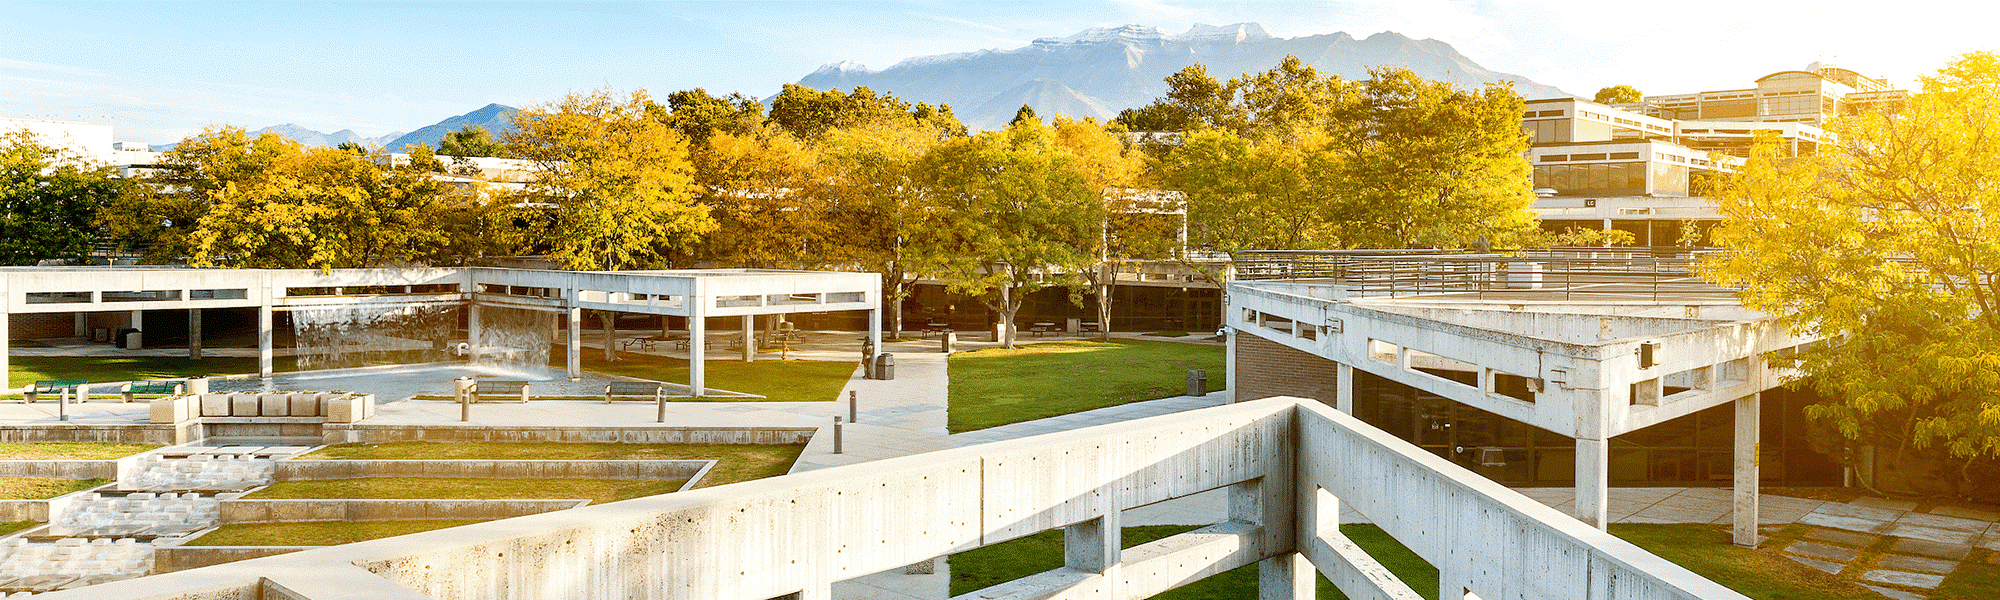 UVU ADMISSIONS:  JOIN US AT ONE OF OUR UPCOMING EVENTS